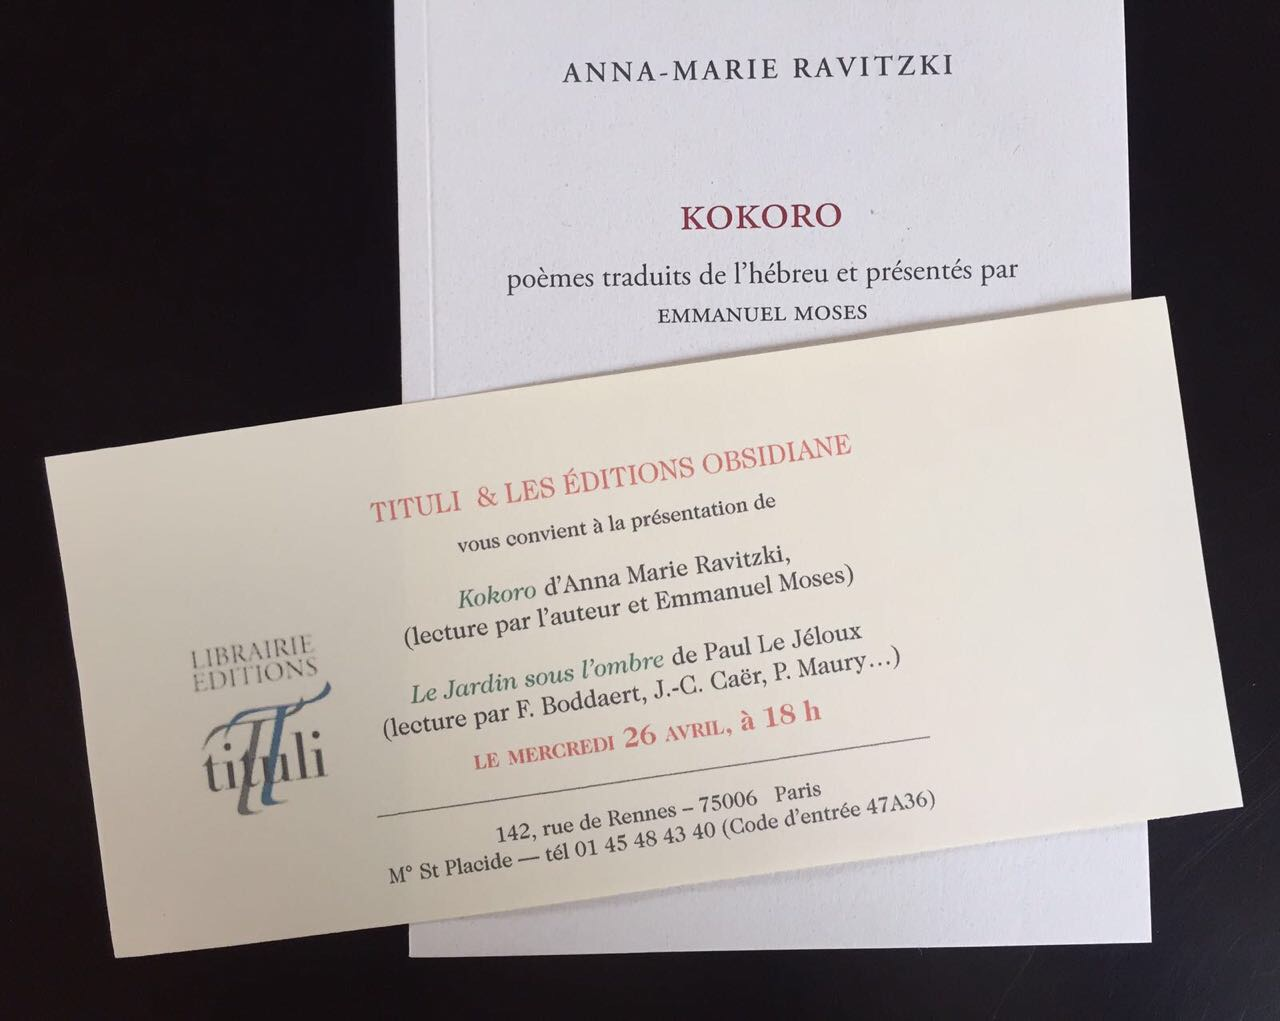 Anna-marie Ravitzki | Kokoro invitation + book in French